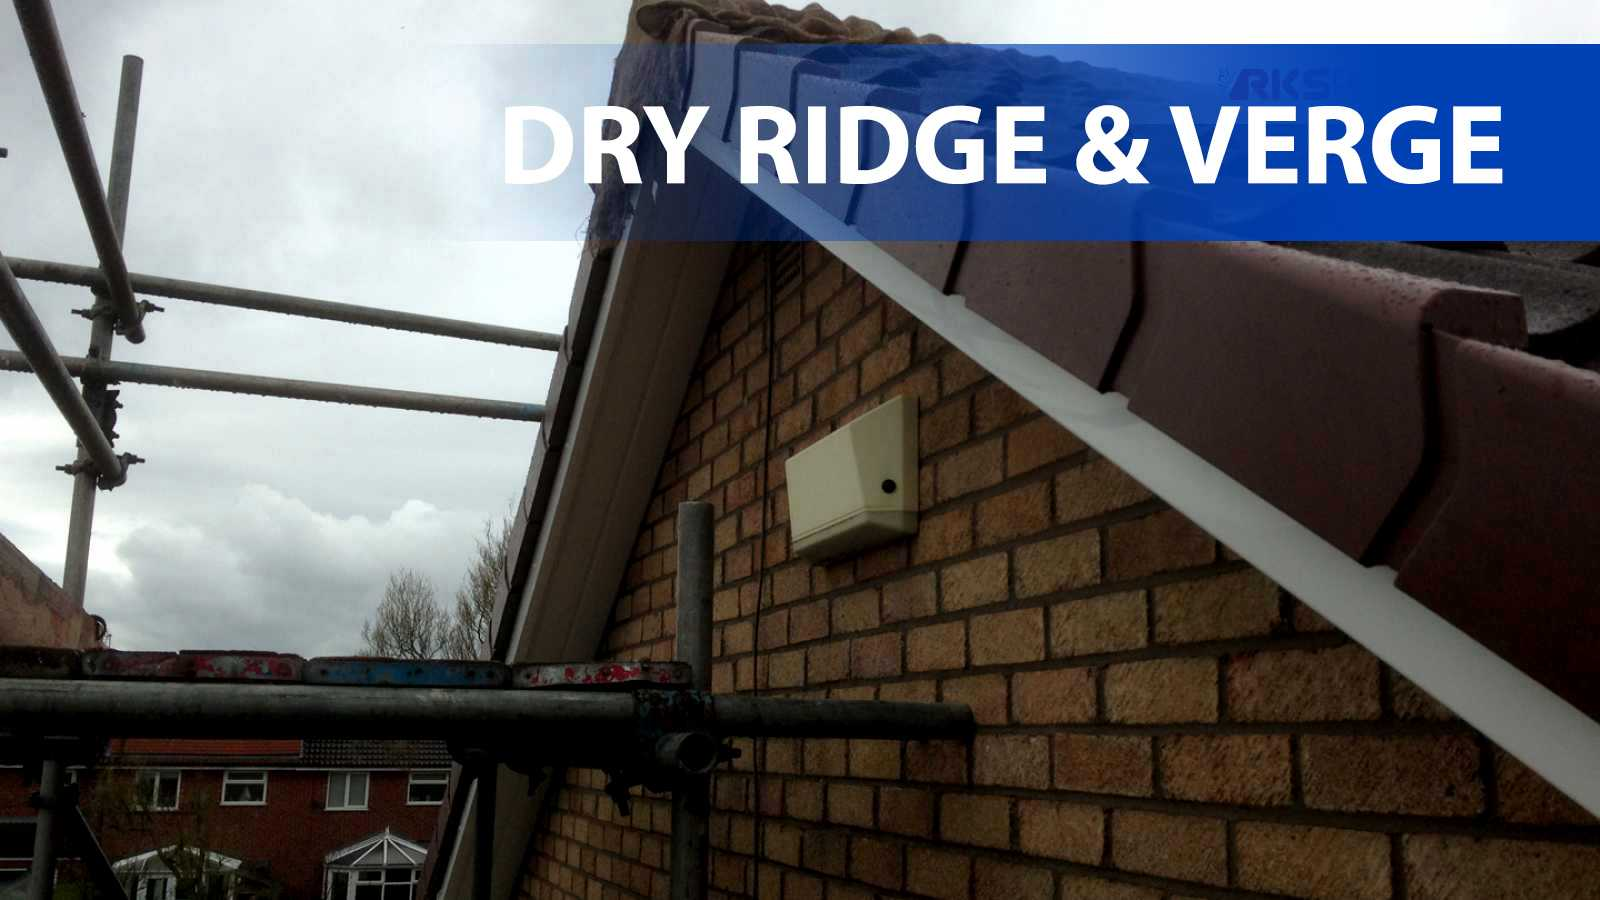 Dry ridge and verge systems in York